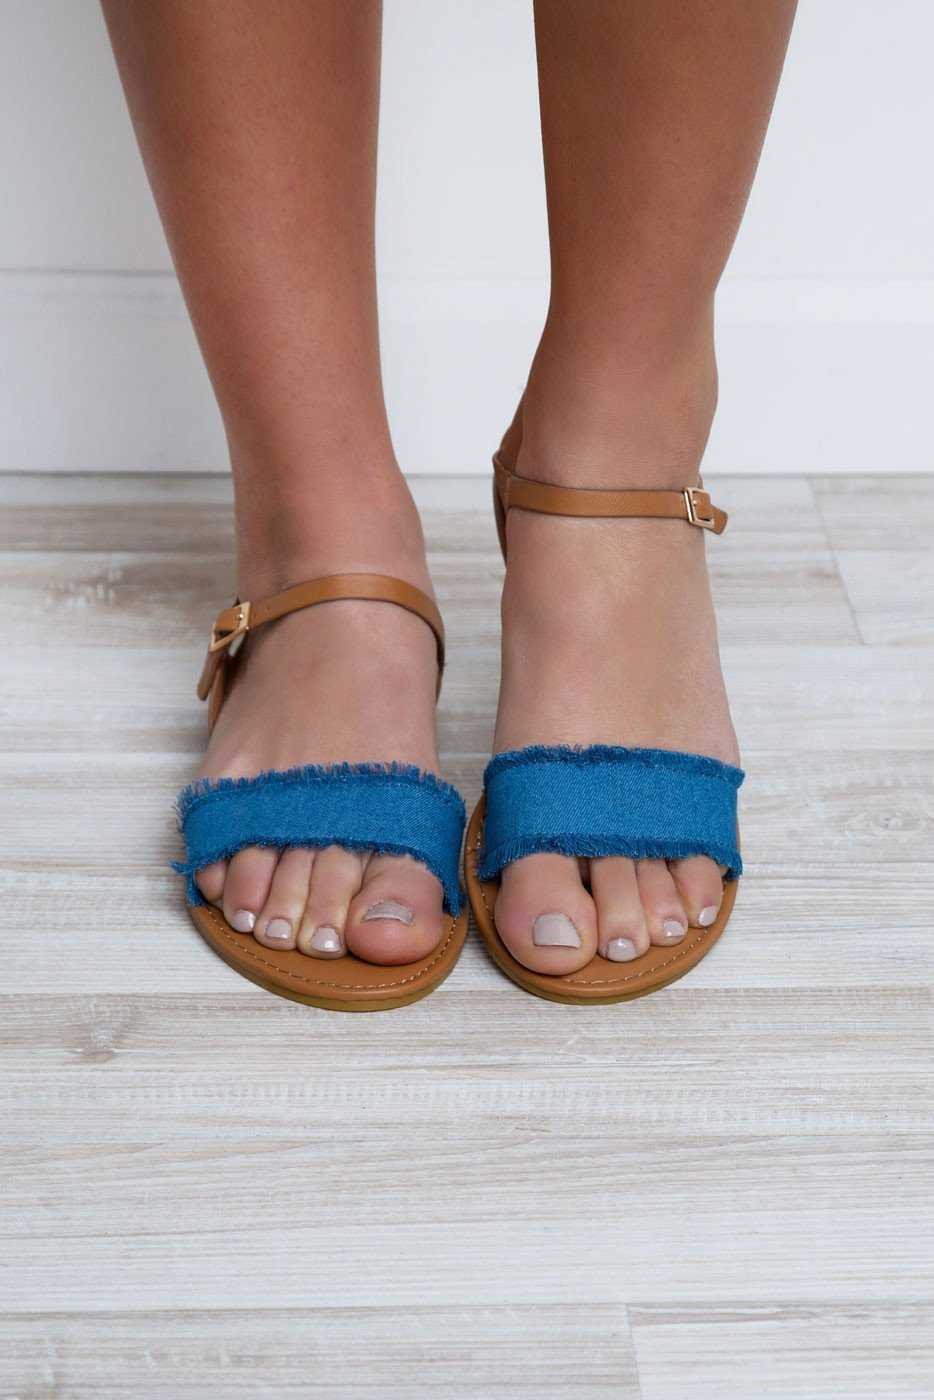 Shoes - Vacation Time Sandals - Denim